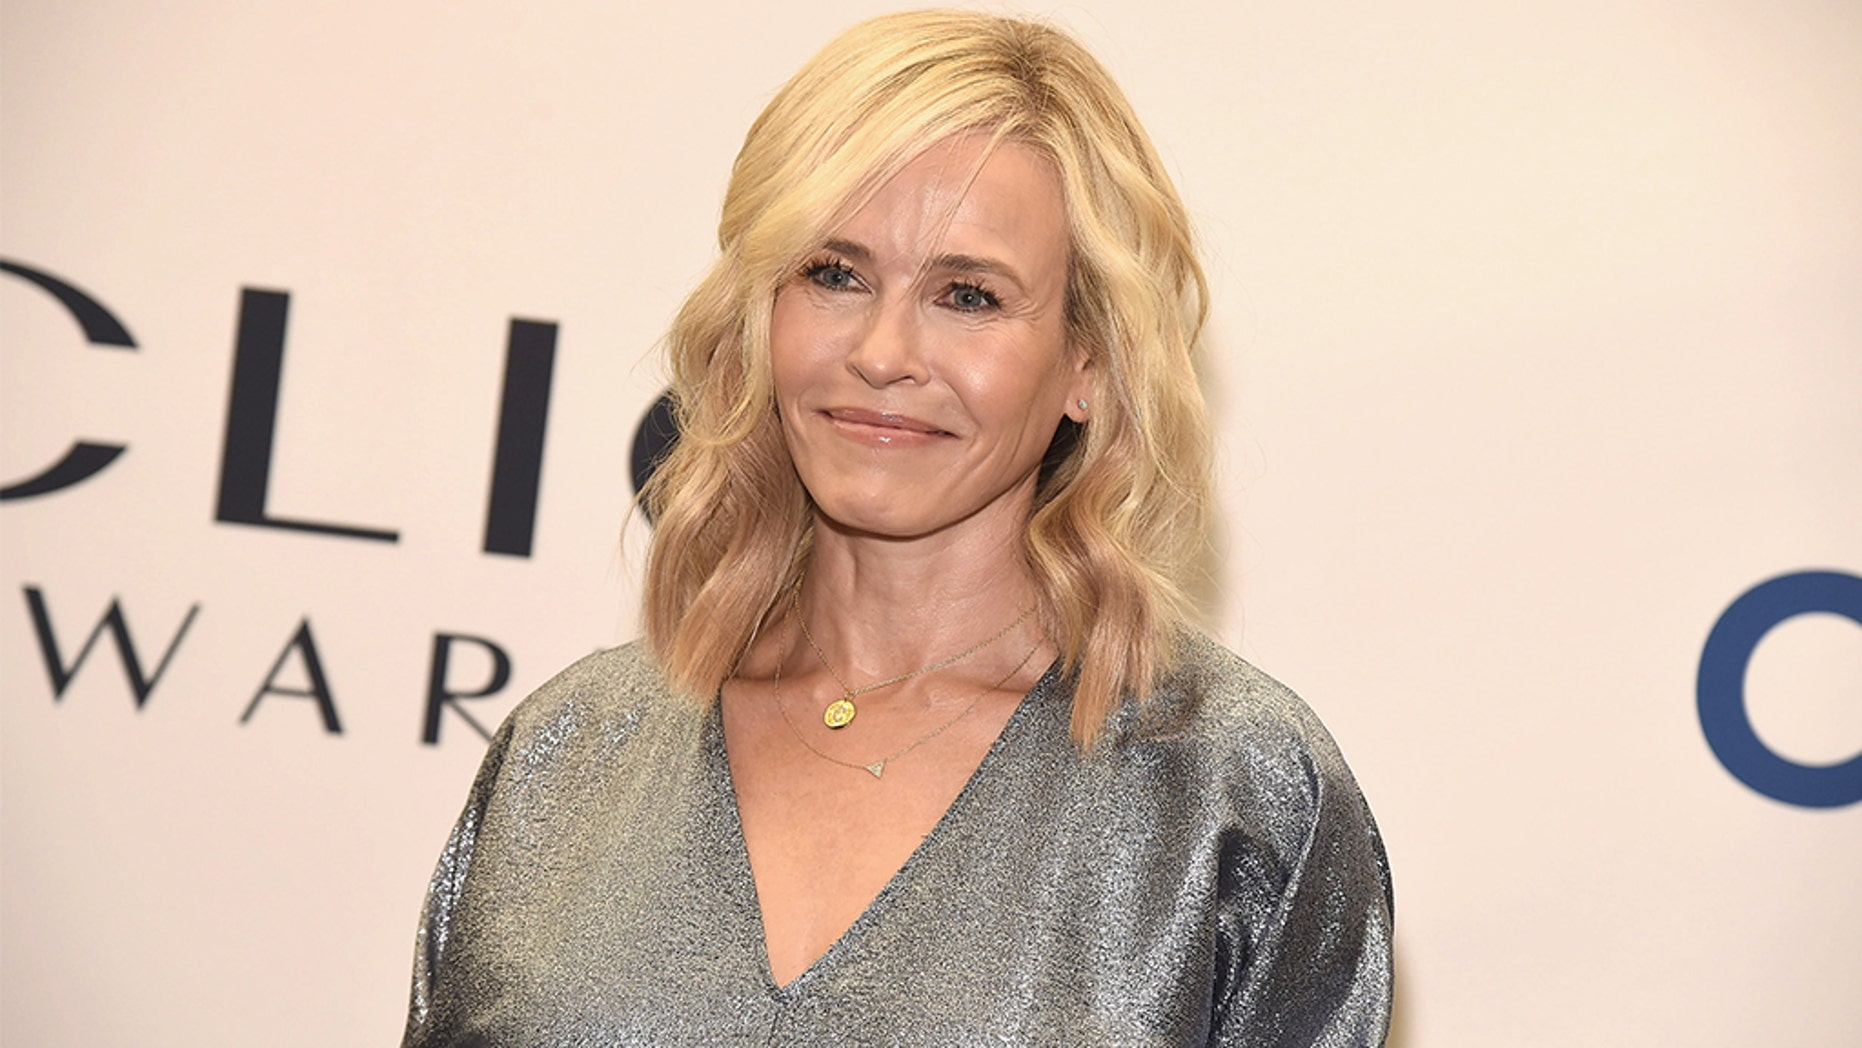 Hot Chelsea Handler nudes (57 photos), Tits, Fappening, Instagram, in bikini 2018